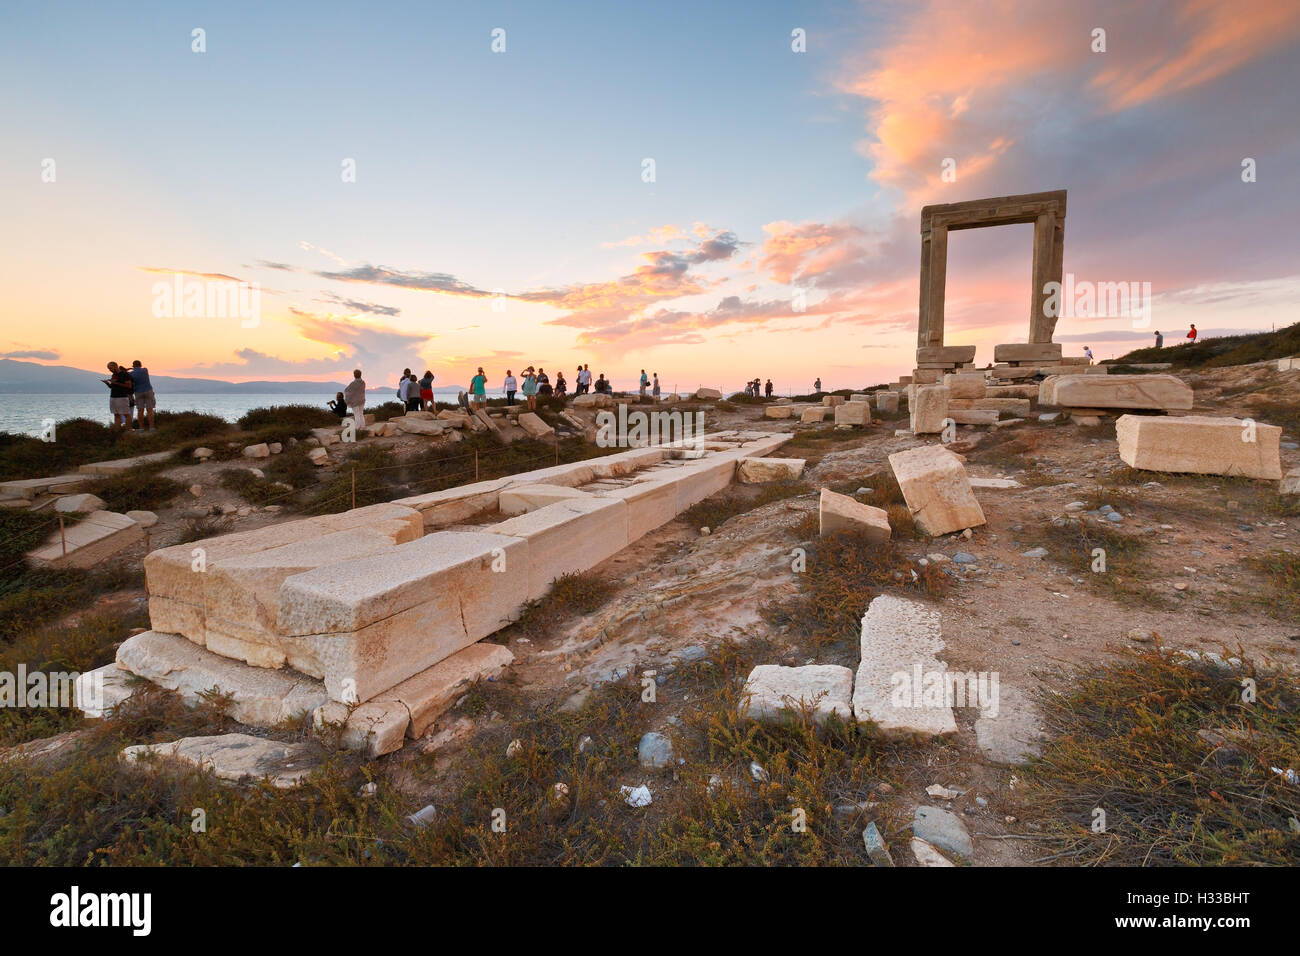 View of Portara and remains of temple of Apollo at sunset. - Stock Image